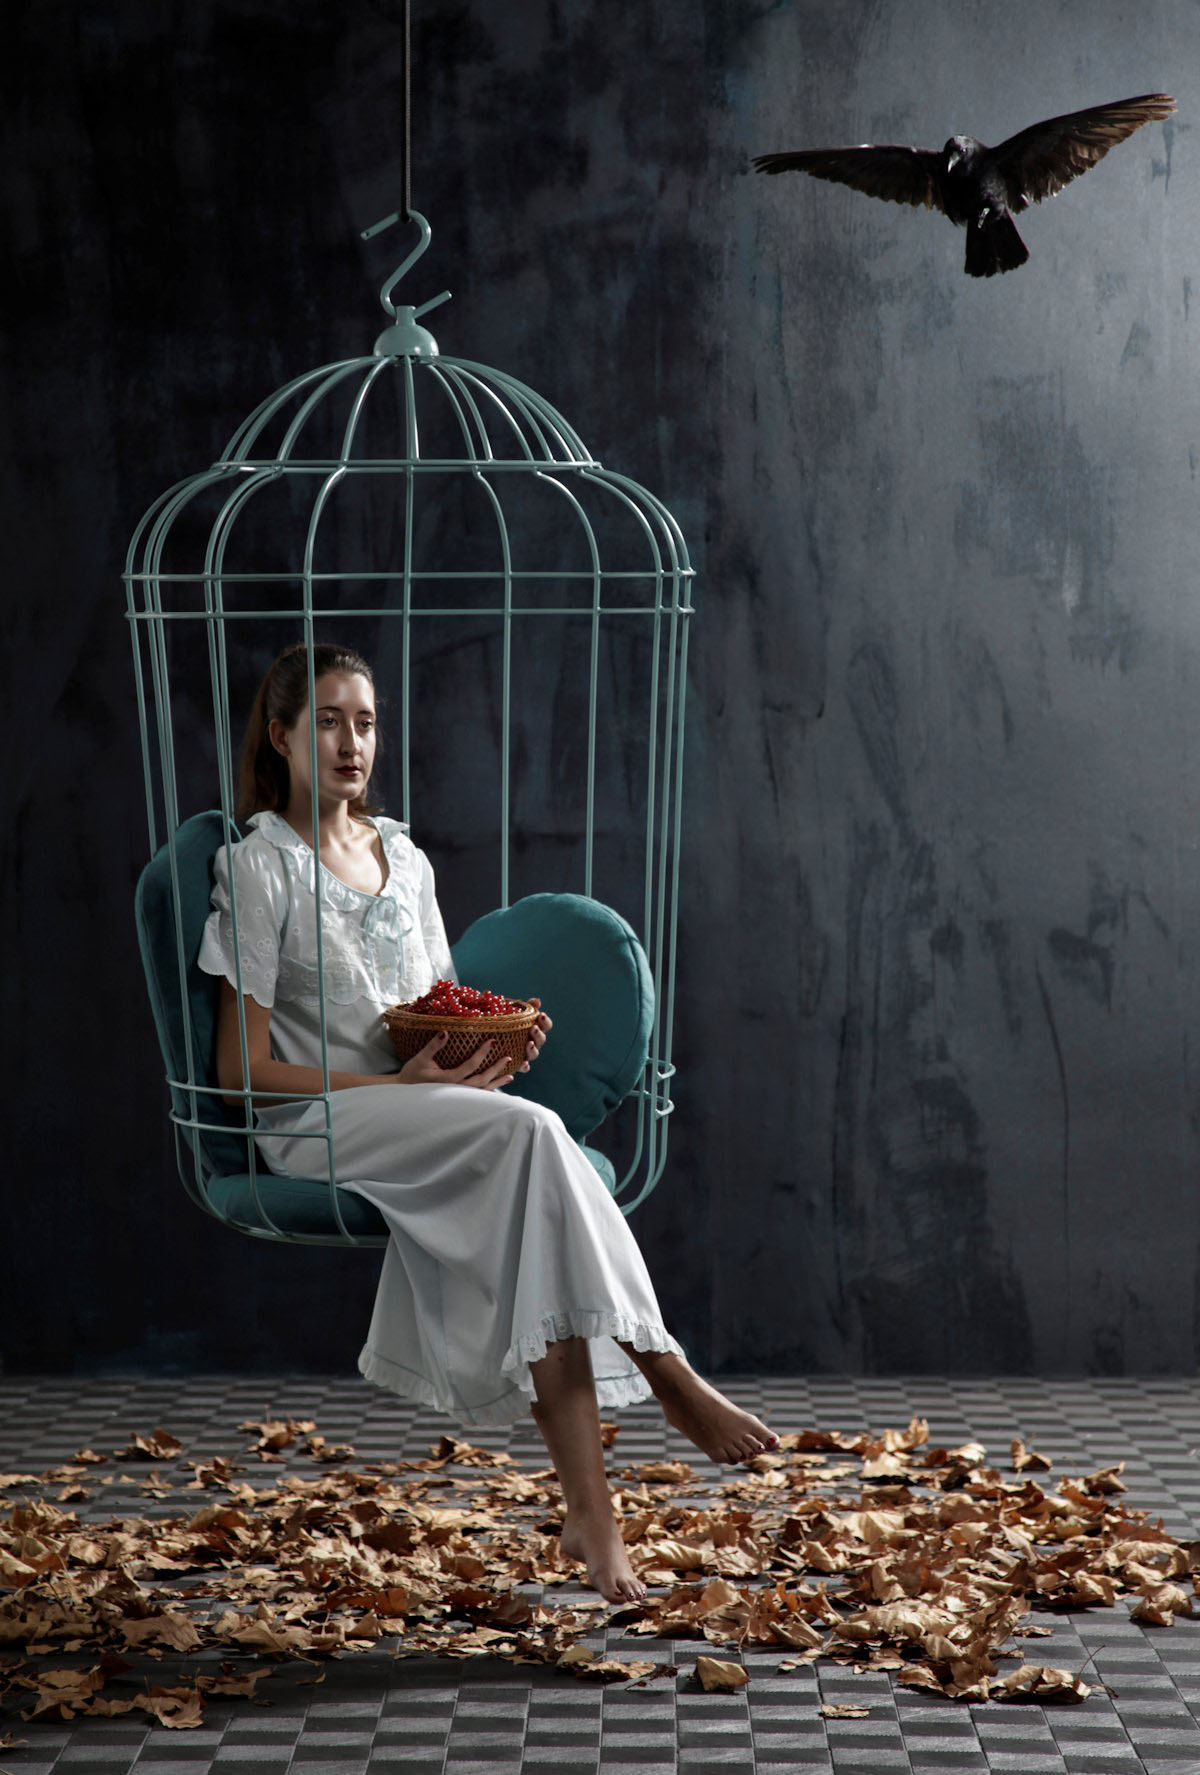 Hypnotizing Cage Chair Flaunting Dutch Design: Cageling